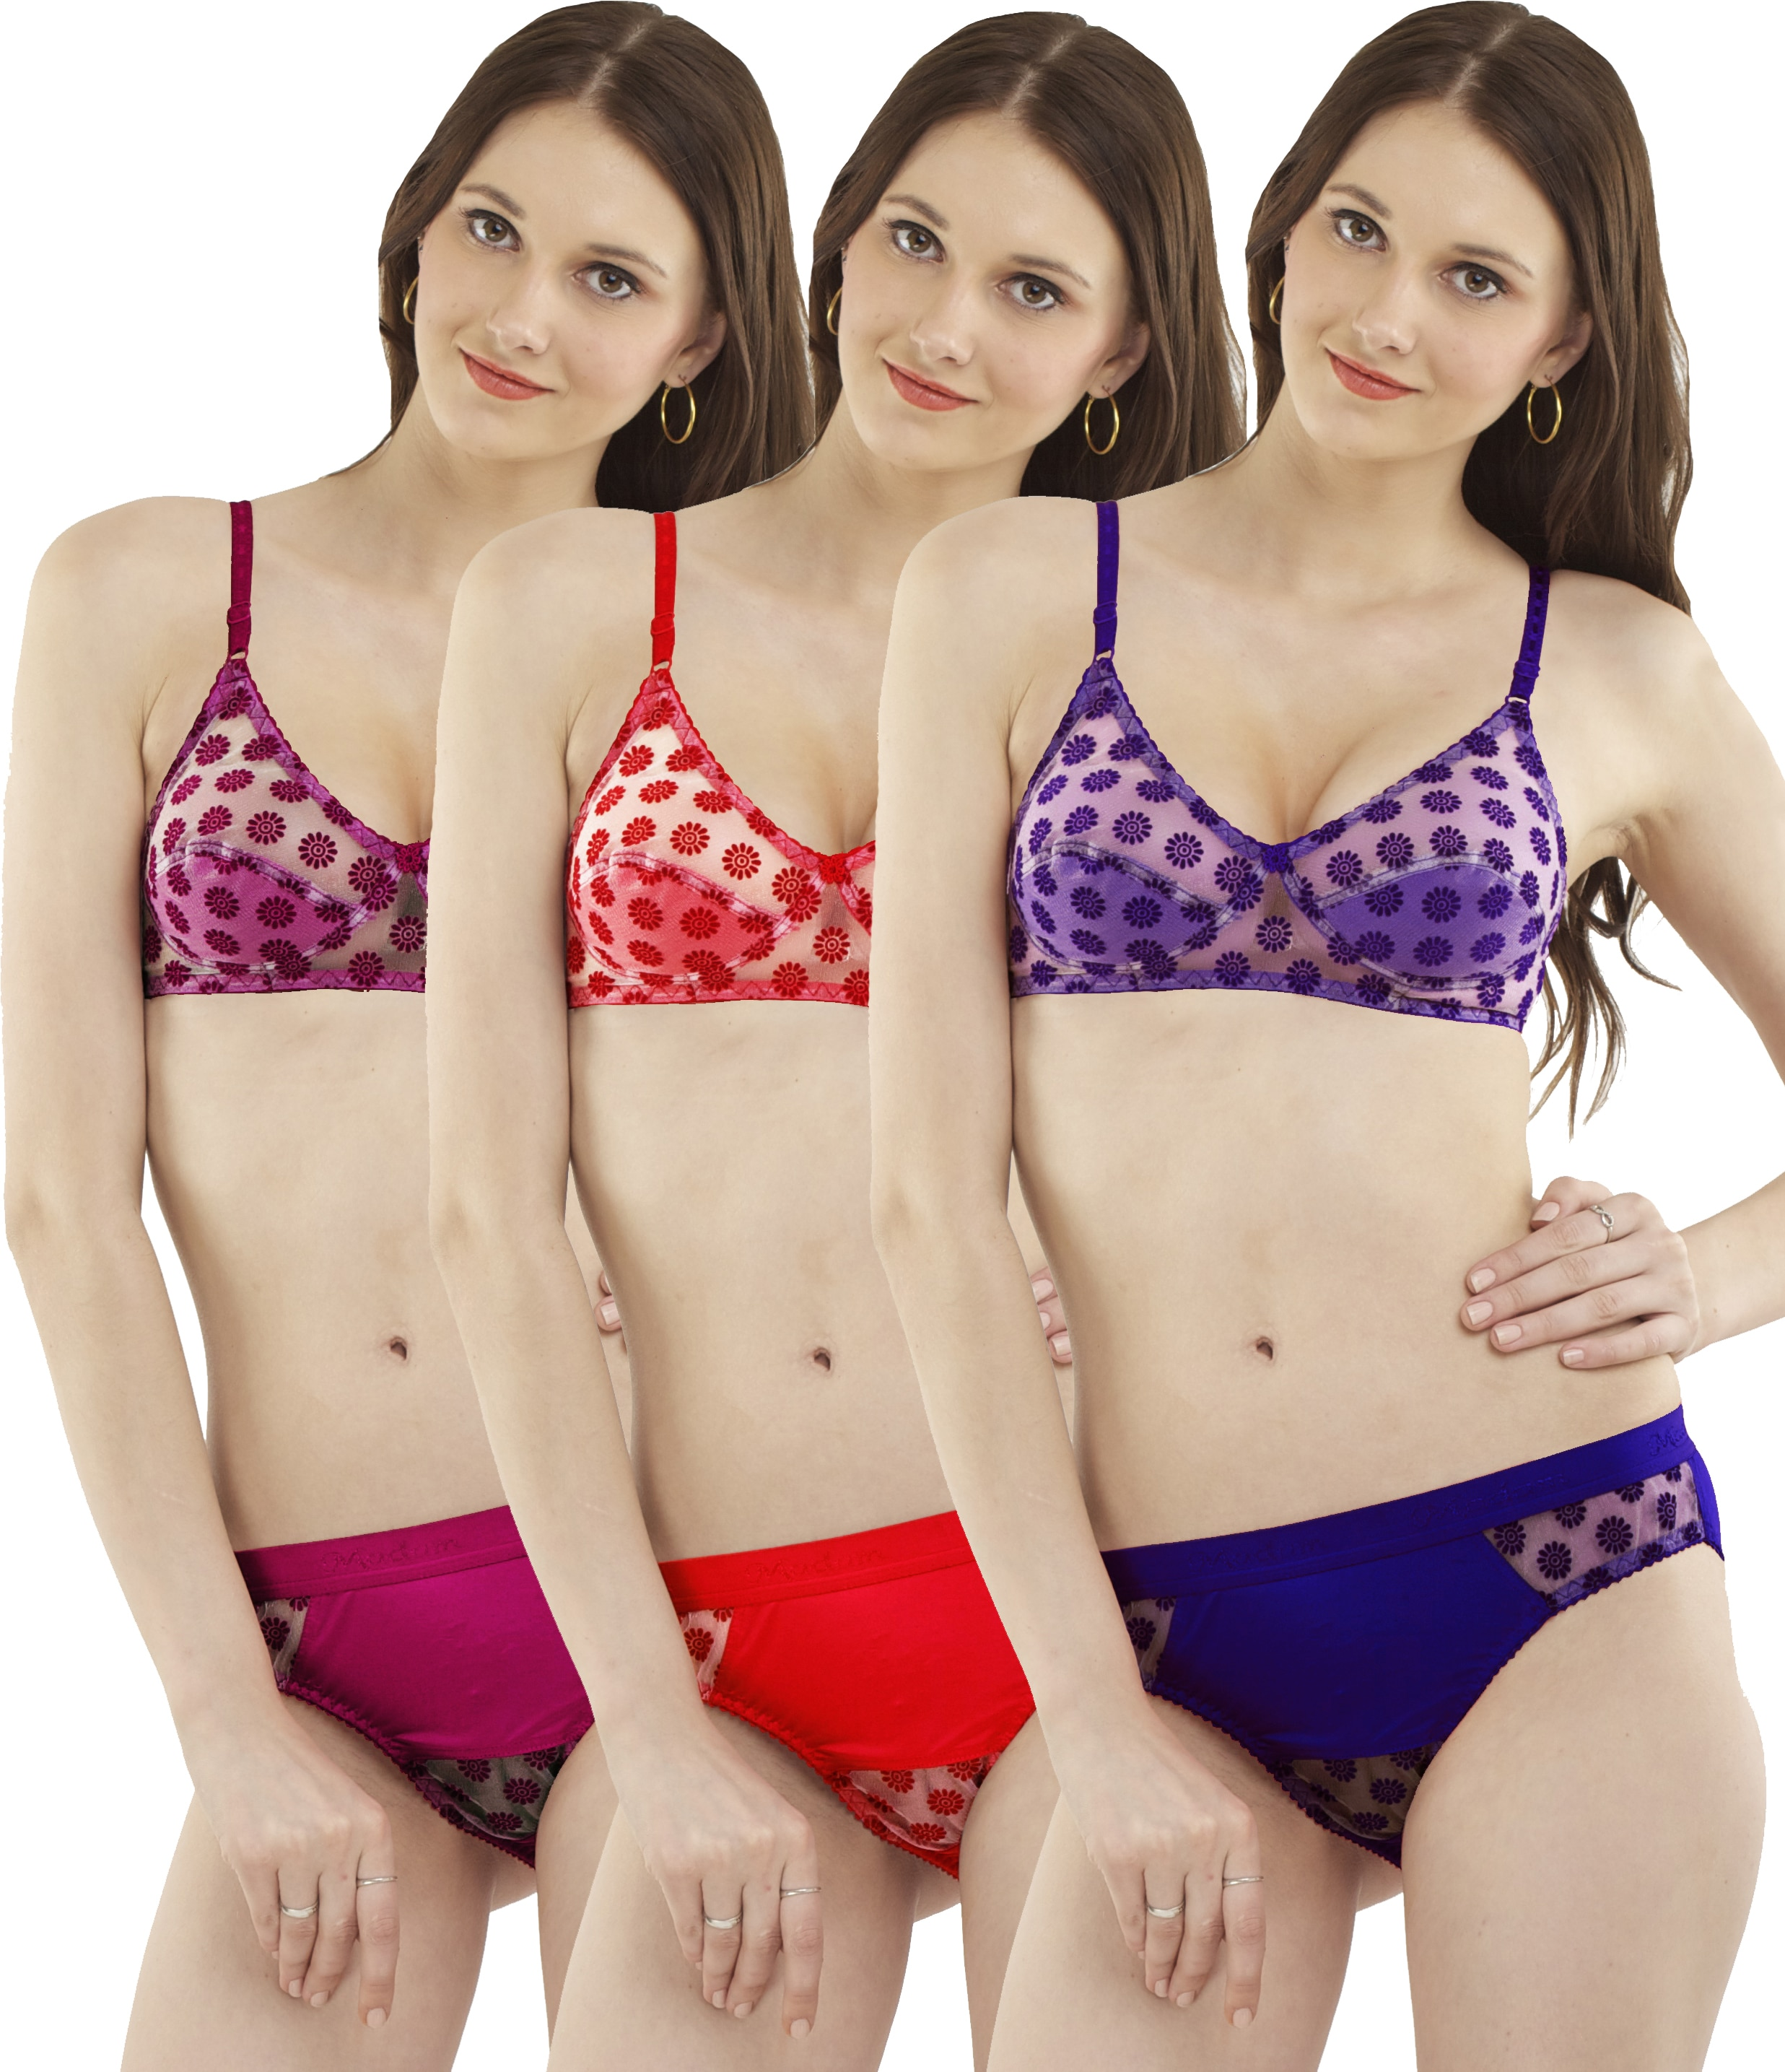 Fancy Bra Set Manufacturer in Thane Mumbai